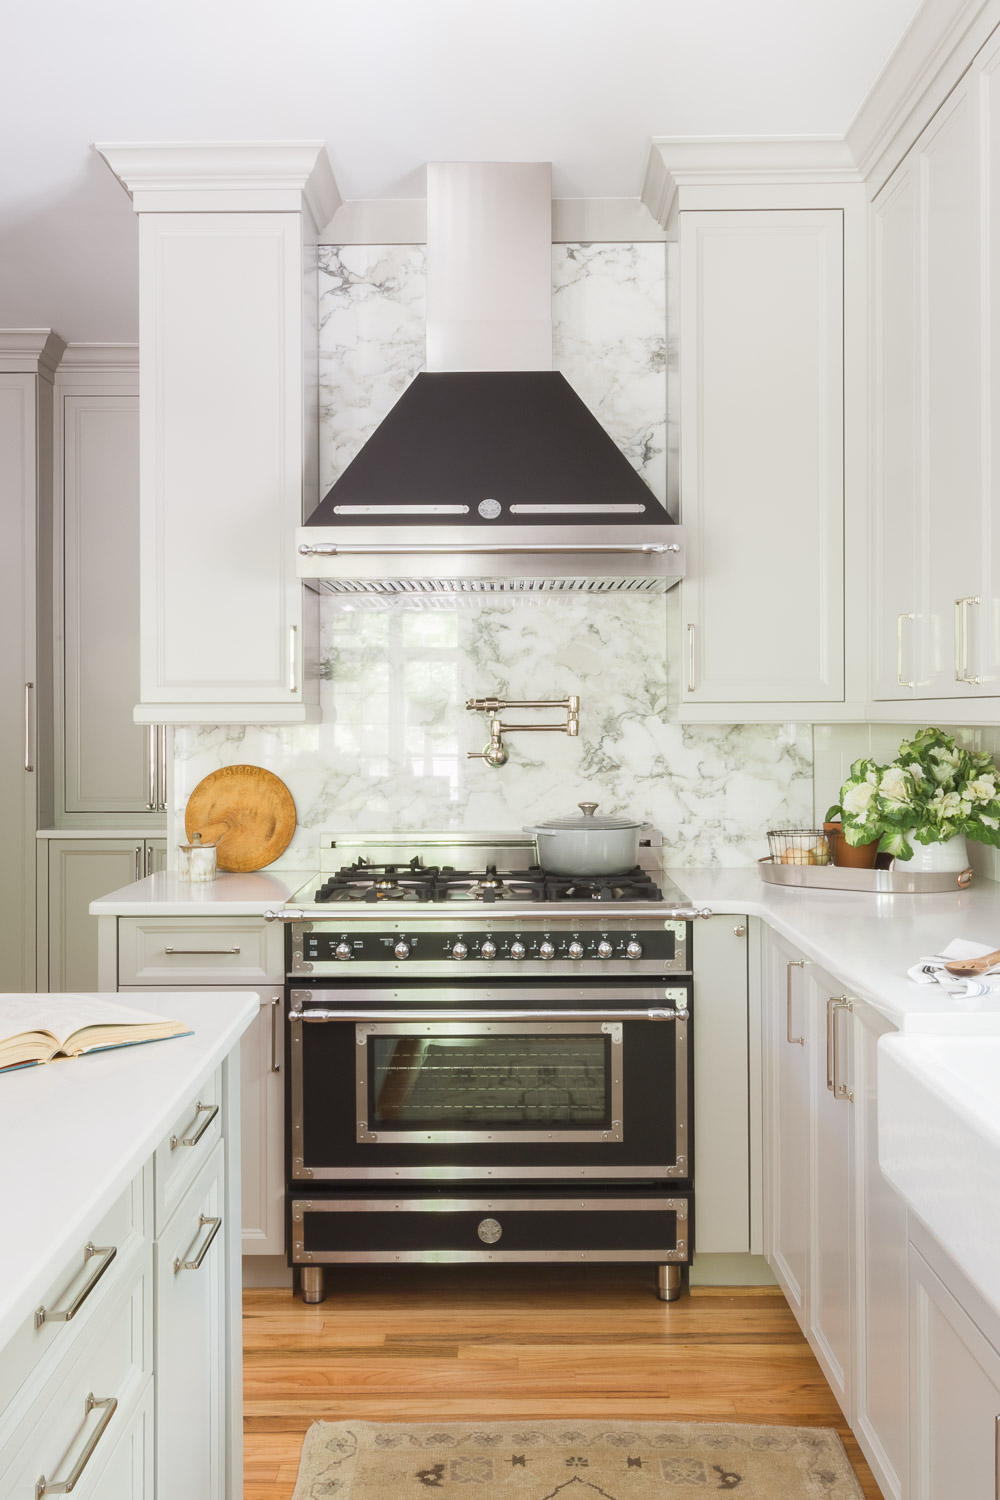 Kitchen Backsplash Trends 2020.Beautiful Kitchen Trends Backsplash Design Loretta J